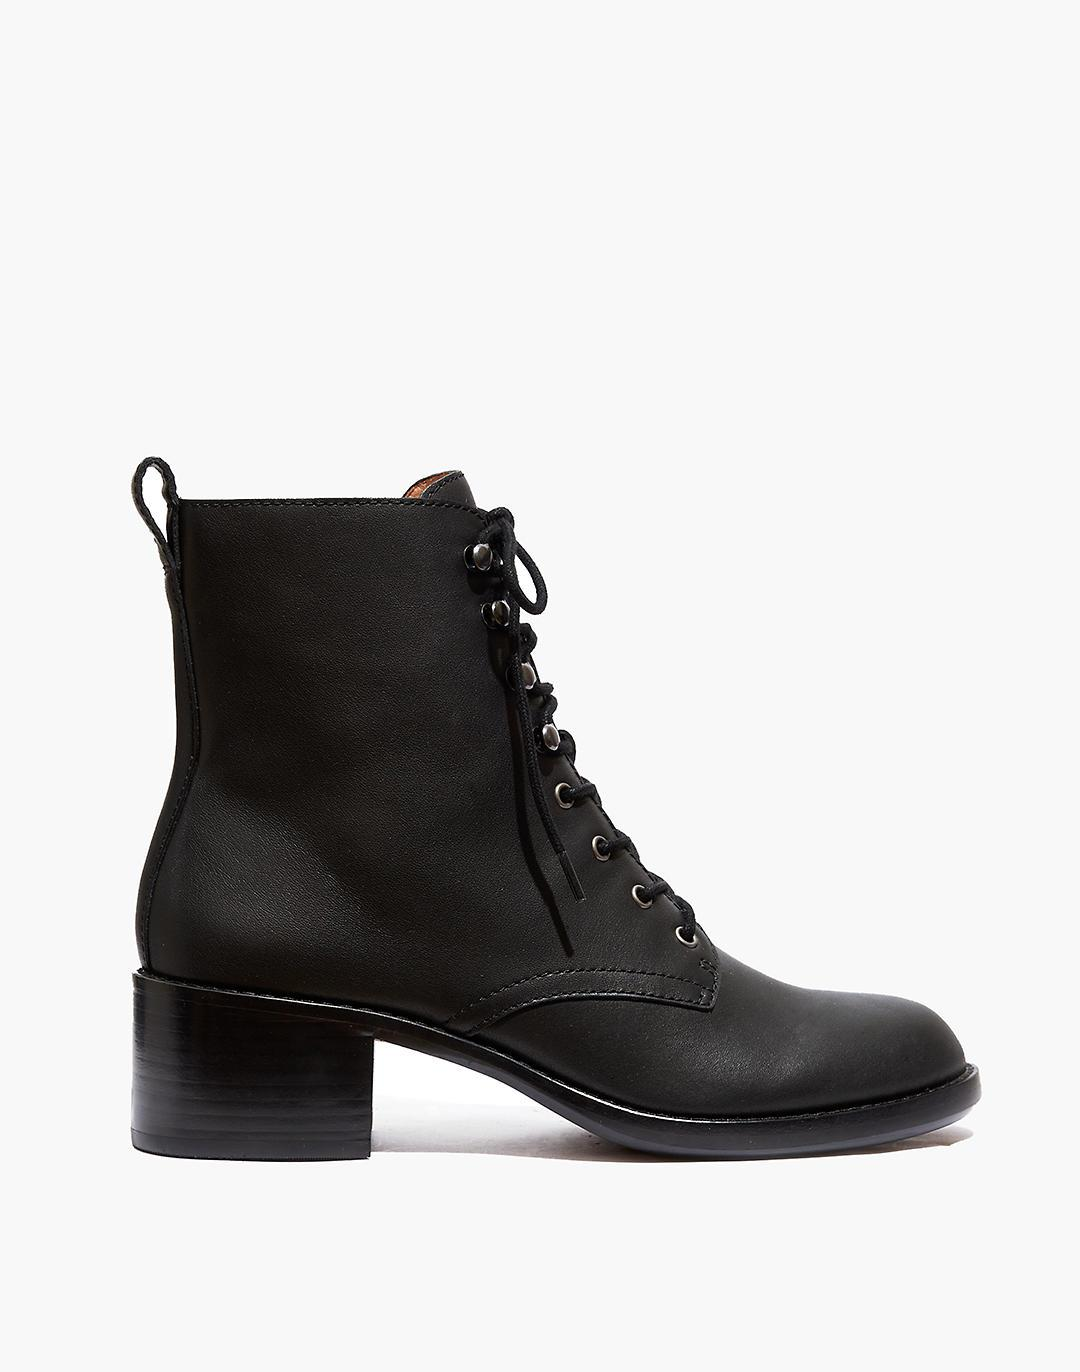 The Patti Lace-Up Boot 1